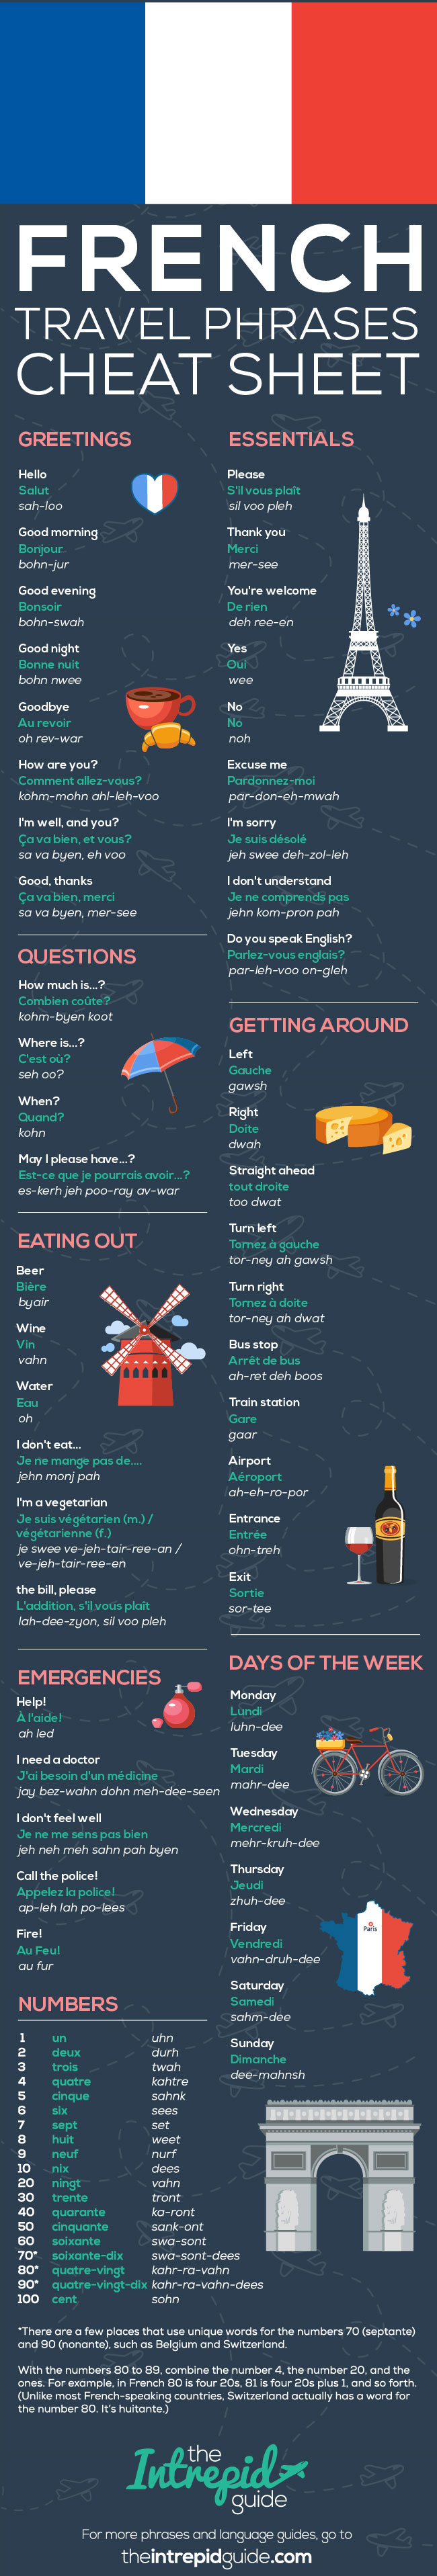 Travel Guide French Language